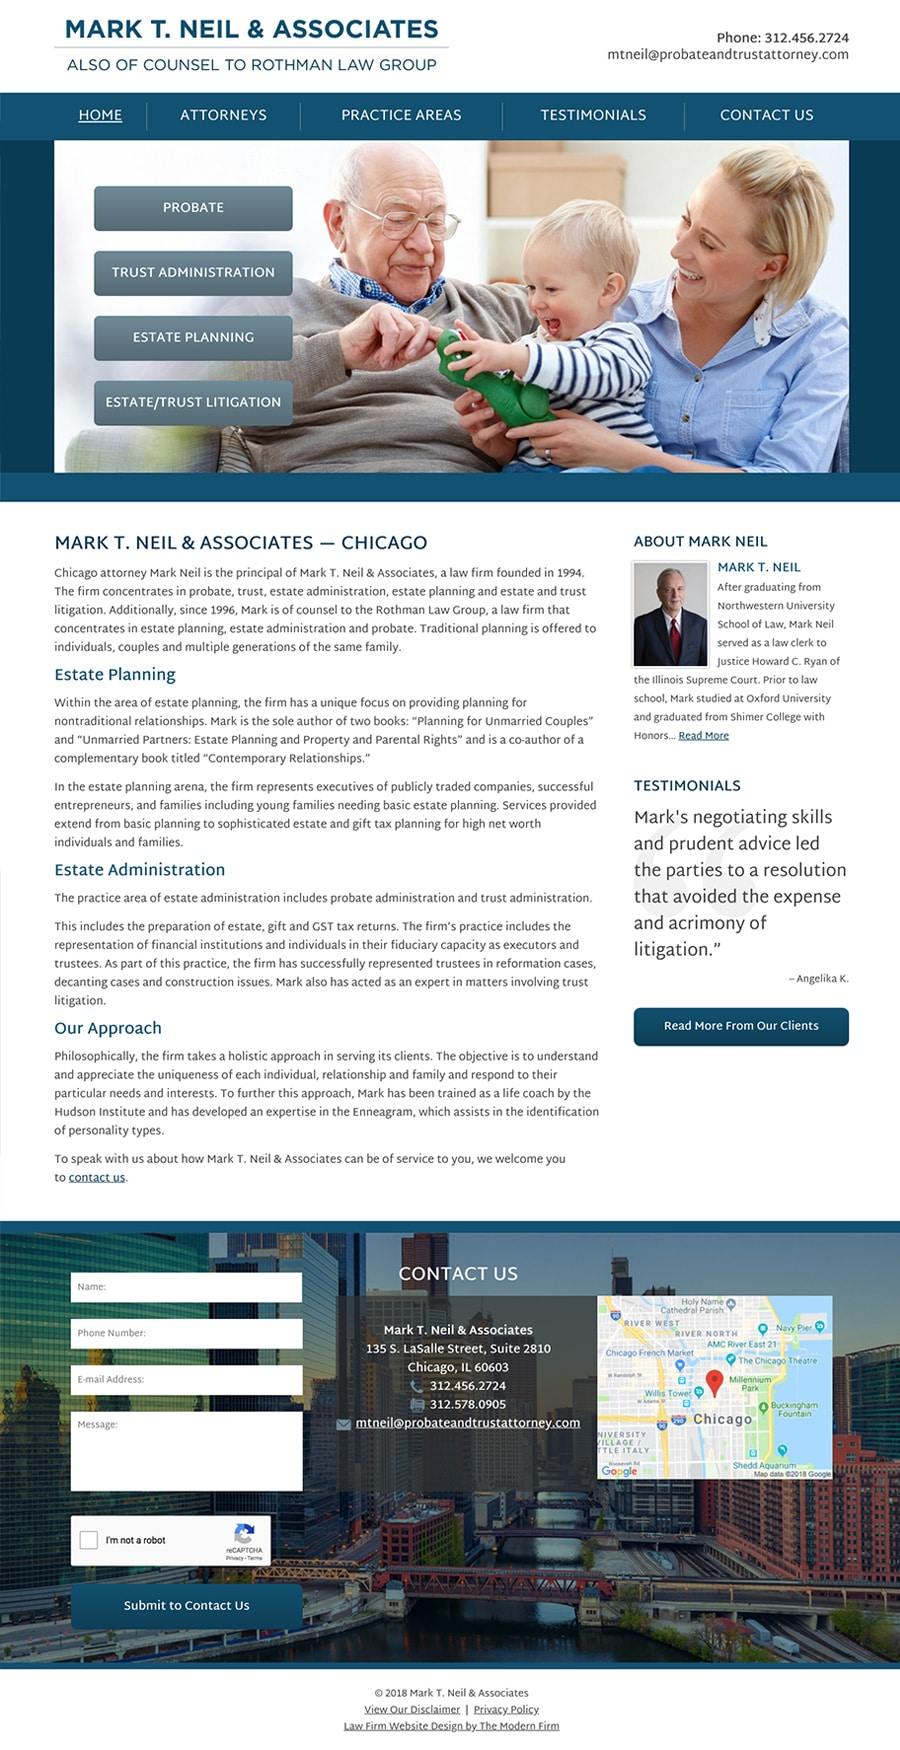 Law Firm Website Design for Mark T. Neil & Associates